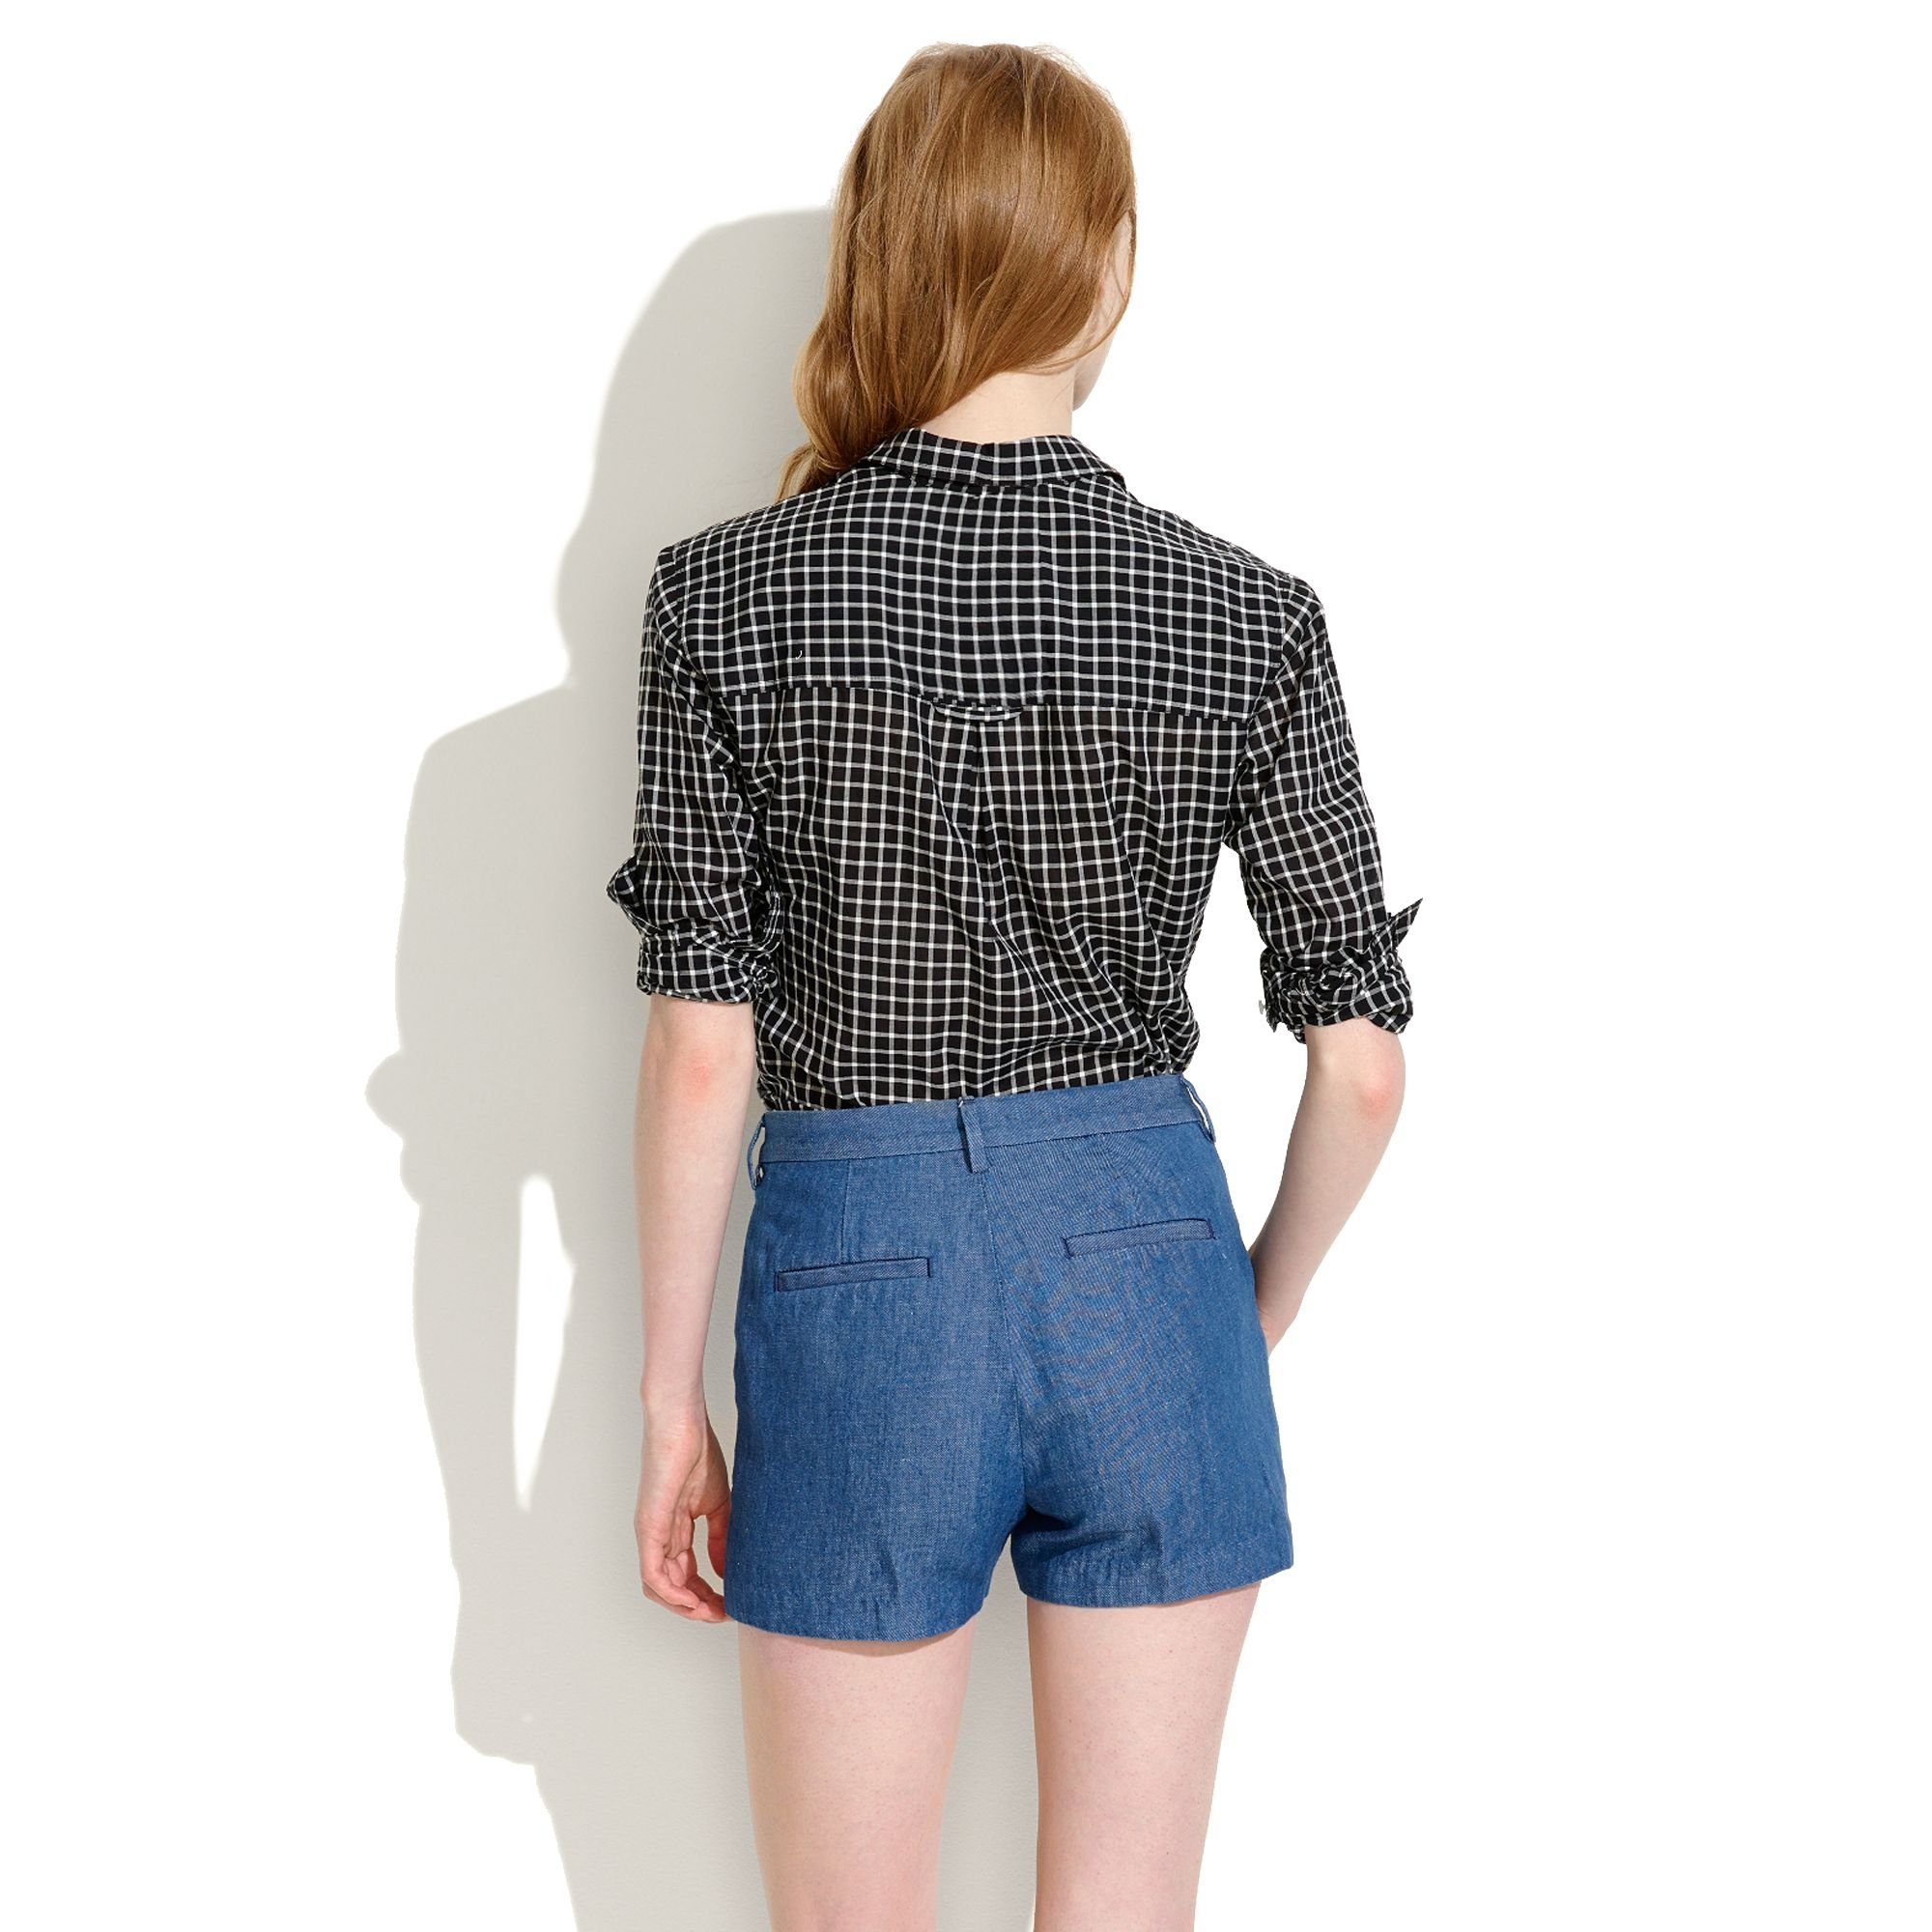 8d54eb805e8 Lyst - Madewell Tailored Shorts in Chambray in Blue